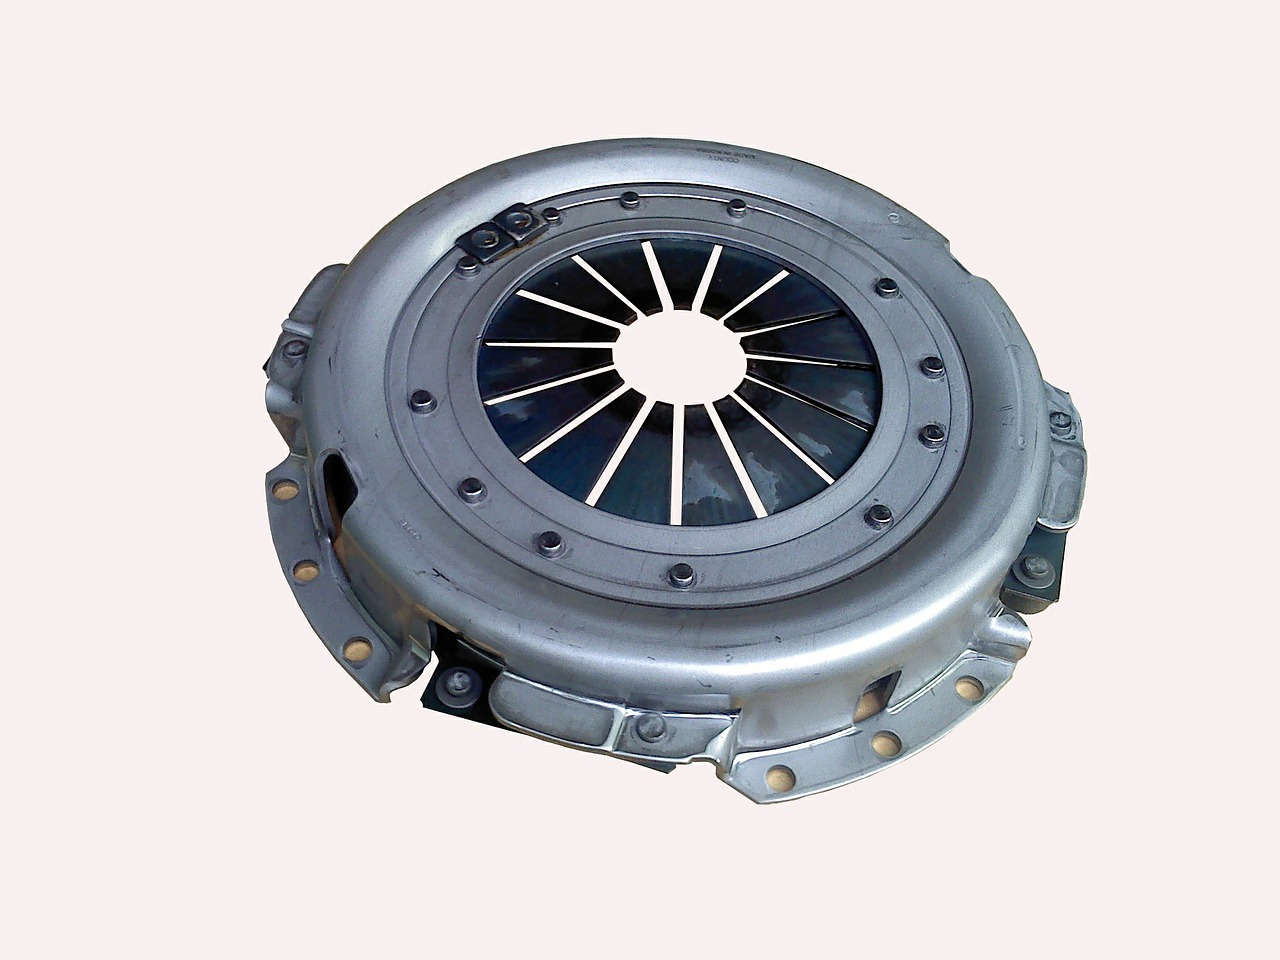 car parts clutch free photo